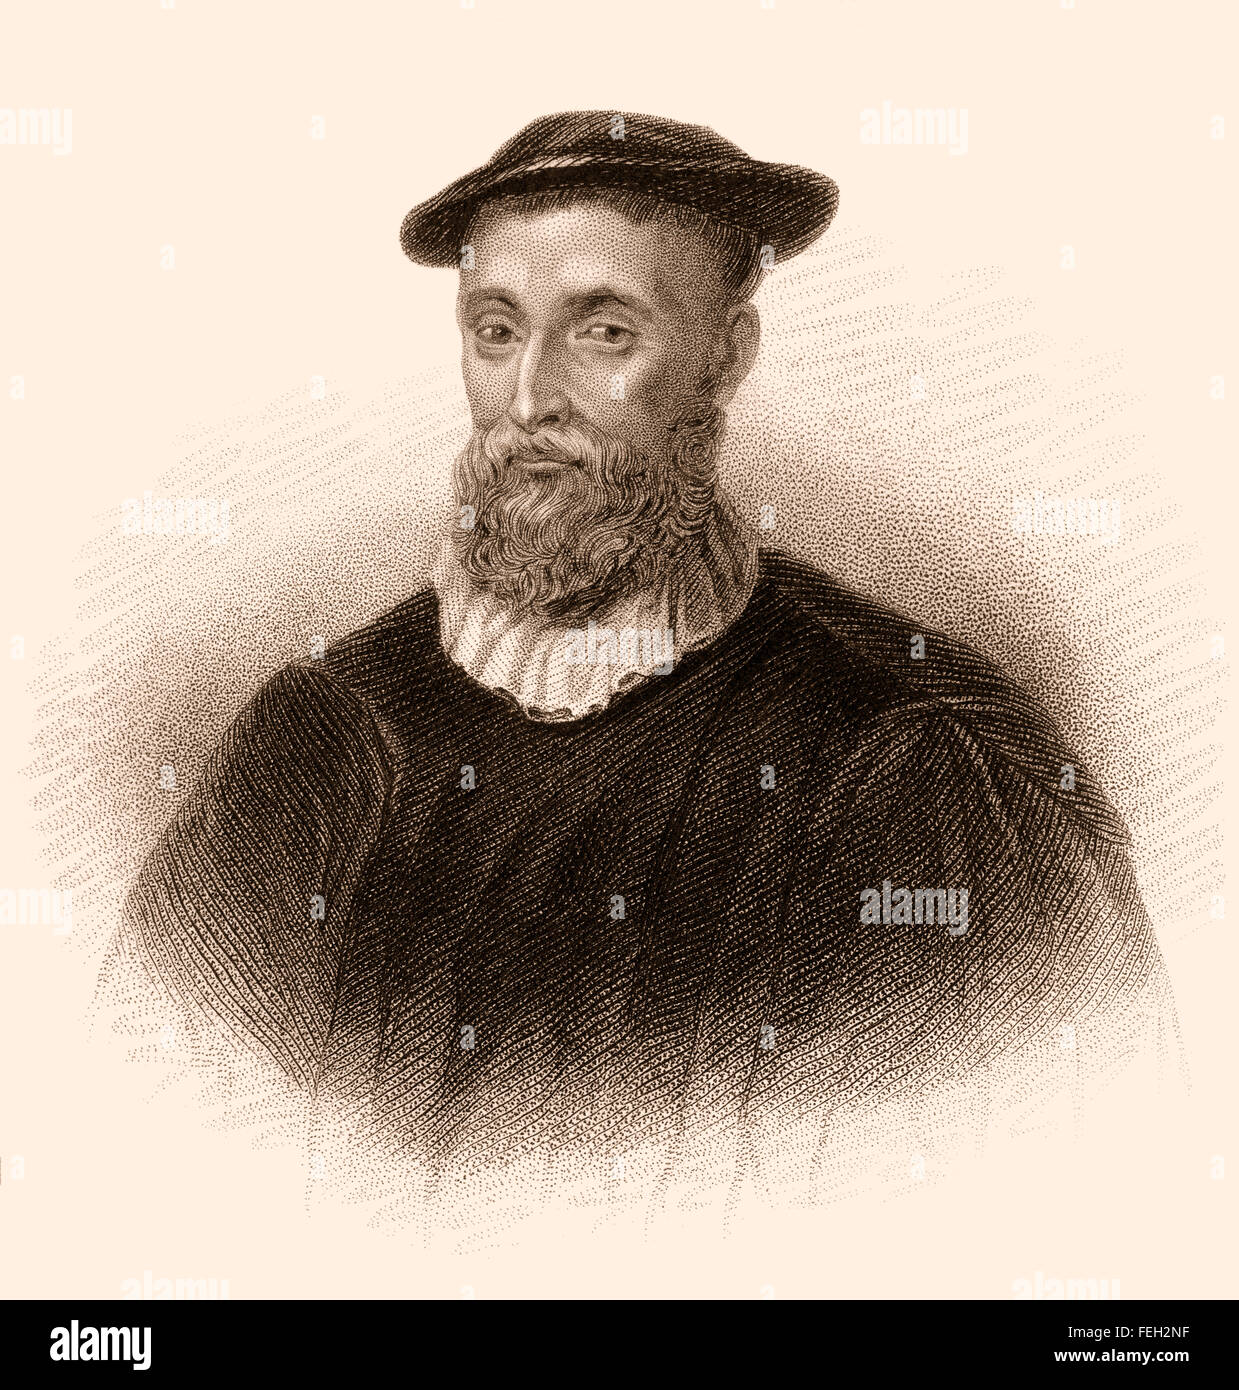 John Knox, c. 1514-1572, a Scottish clergyman, writer and a leader of the Protestant Reformation, - Stock Image